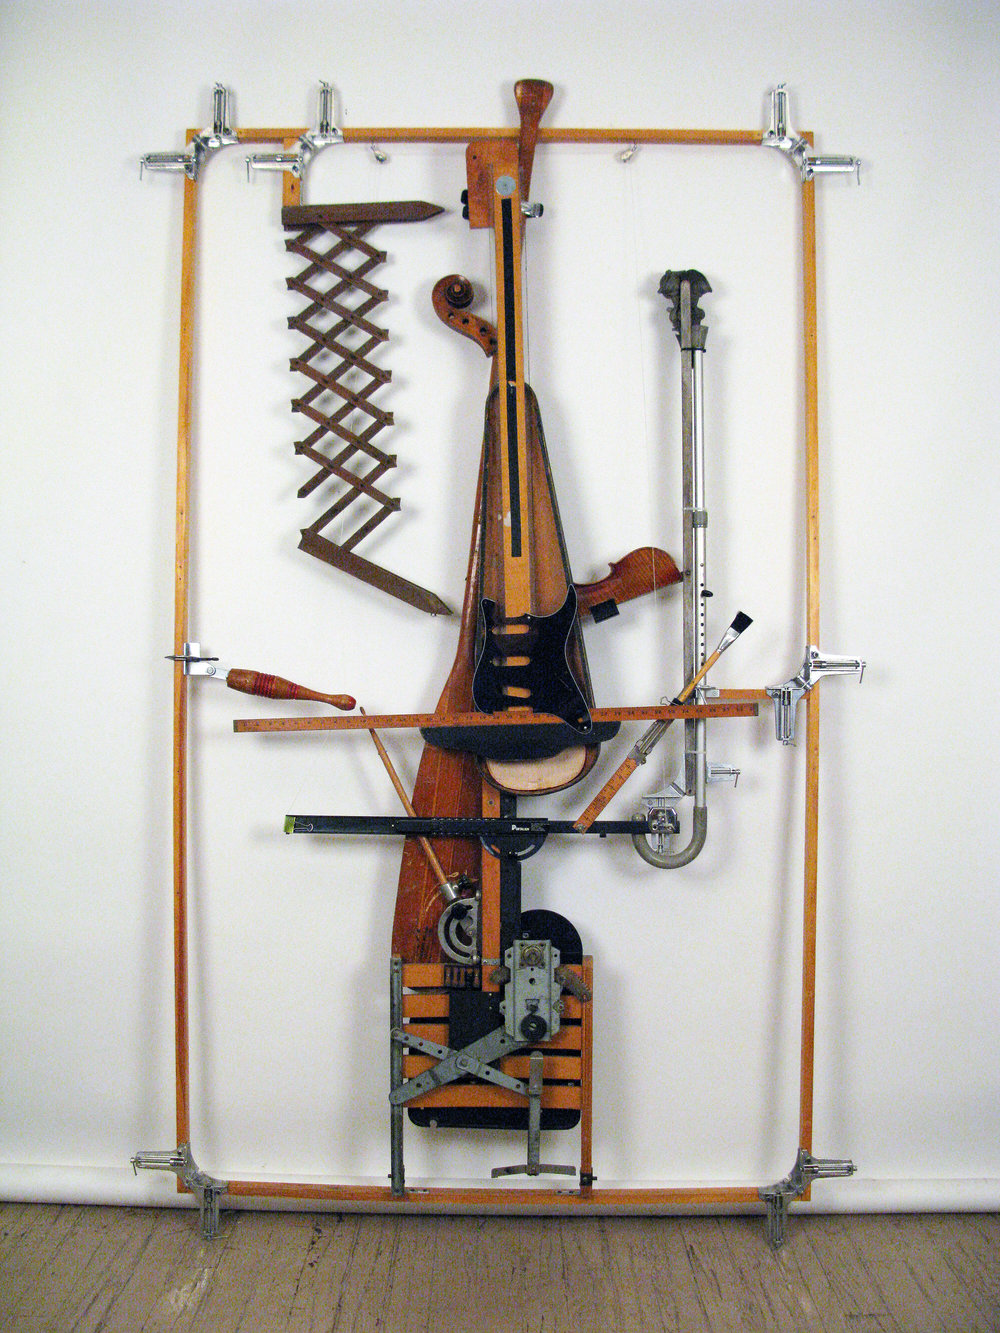 T-Square Yardstick Cello, assemblage (variable), 90x60x3, 2018